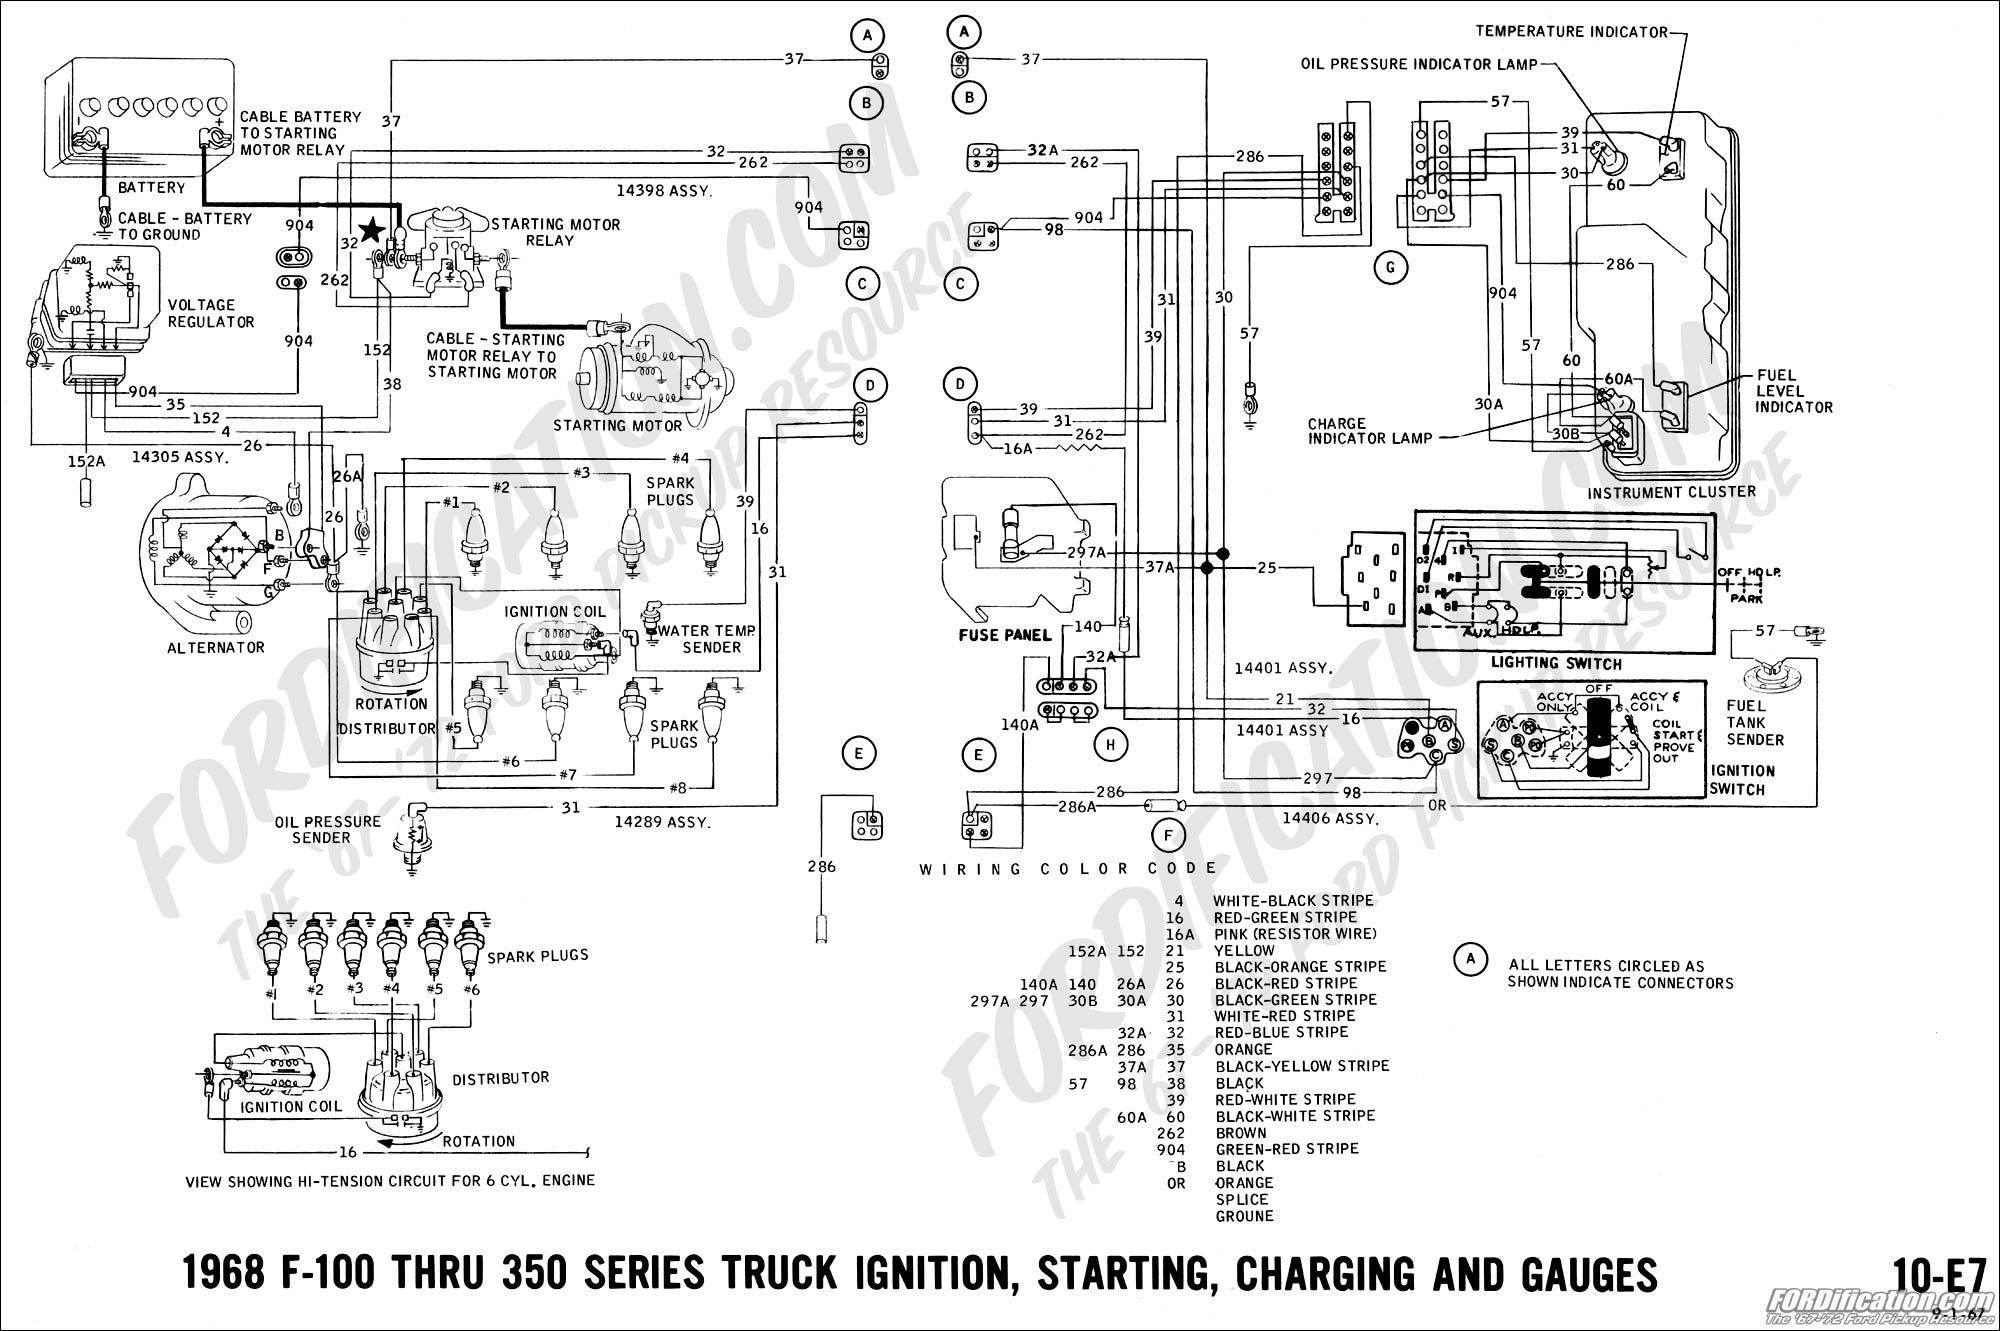 1971 ford f100 ignition switch wiring diagram 1971 wiring diagram for 1972 ford f100 the wiring diagram on 1971 ford f100 ignition switch wiring